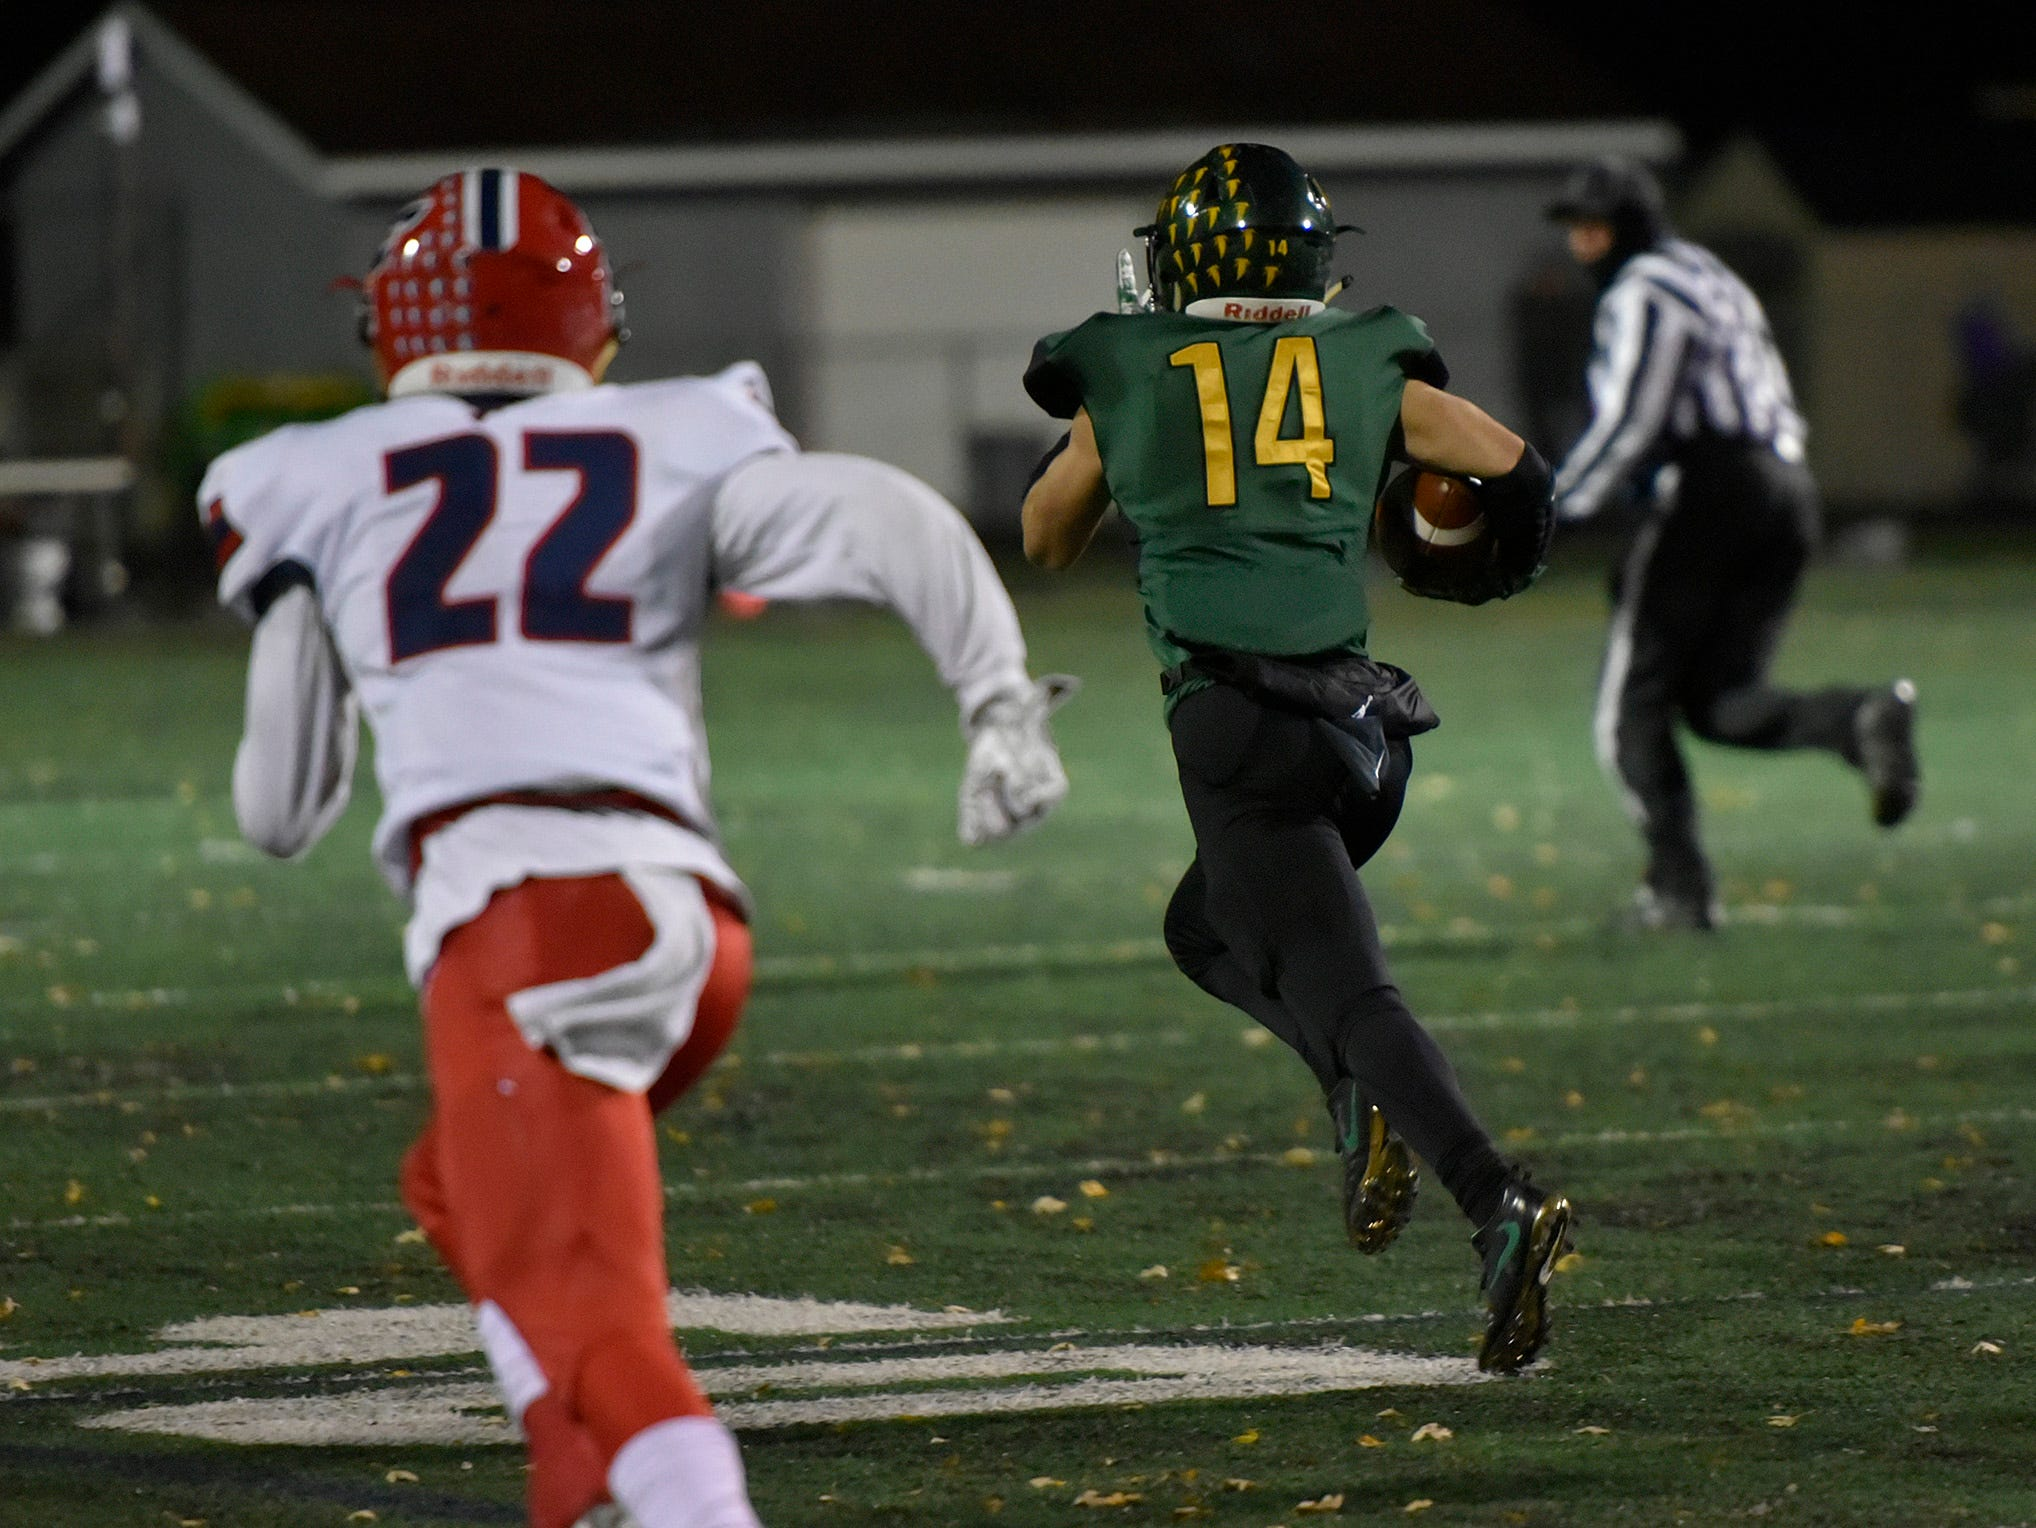 Birmingham Groves WR/DB Colby Taylor (14) has a clear path to the end zone for a touchdown. Livonia Franklin DB/SL James Carpenter can't catch him.